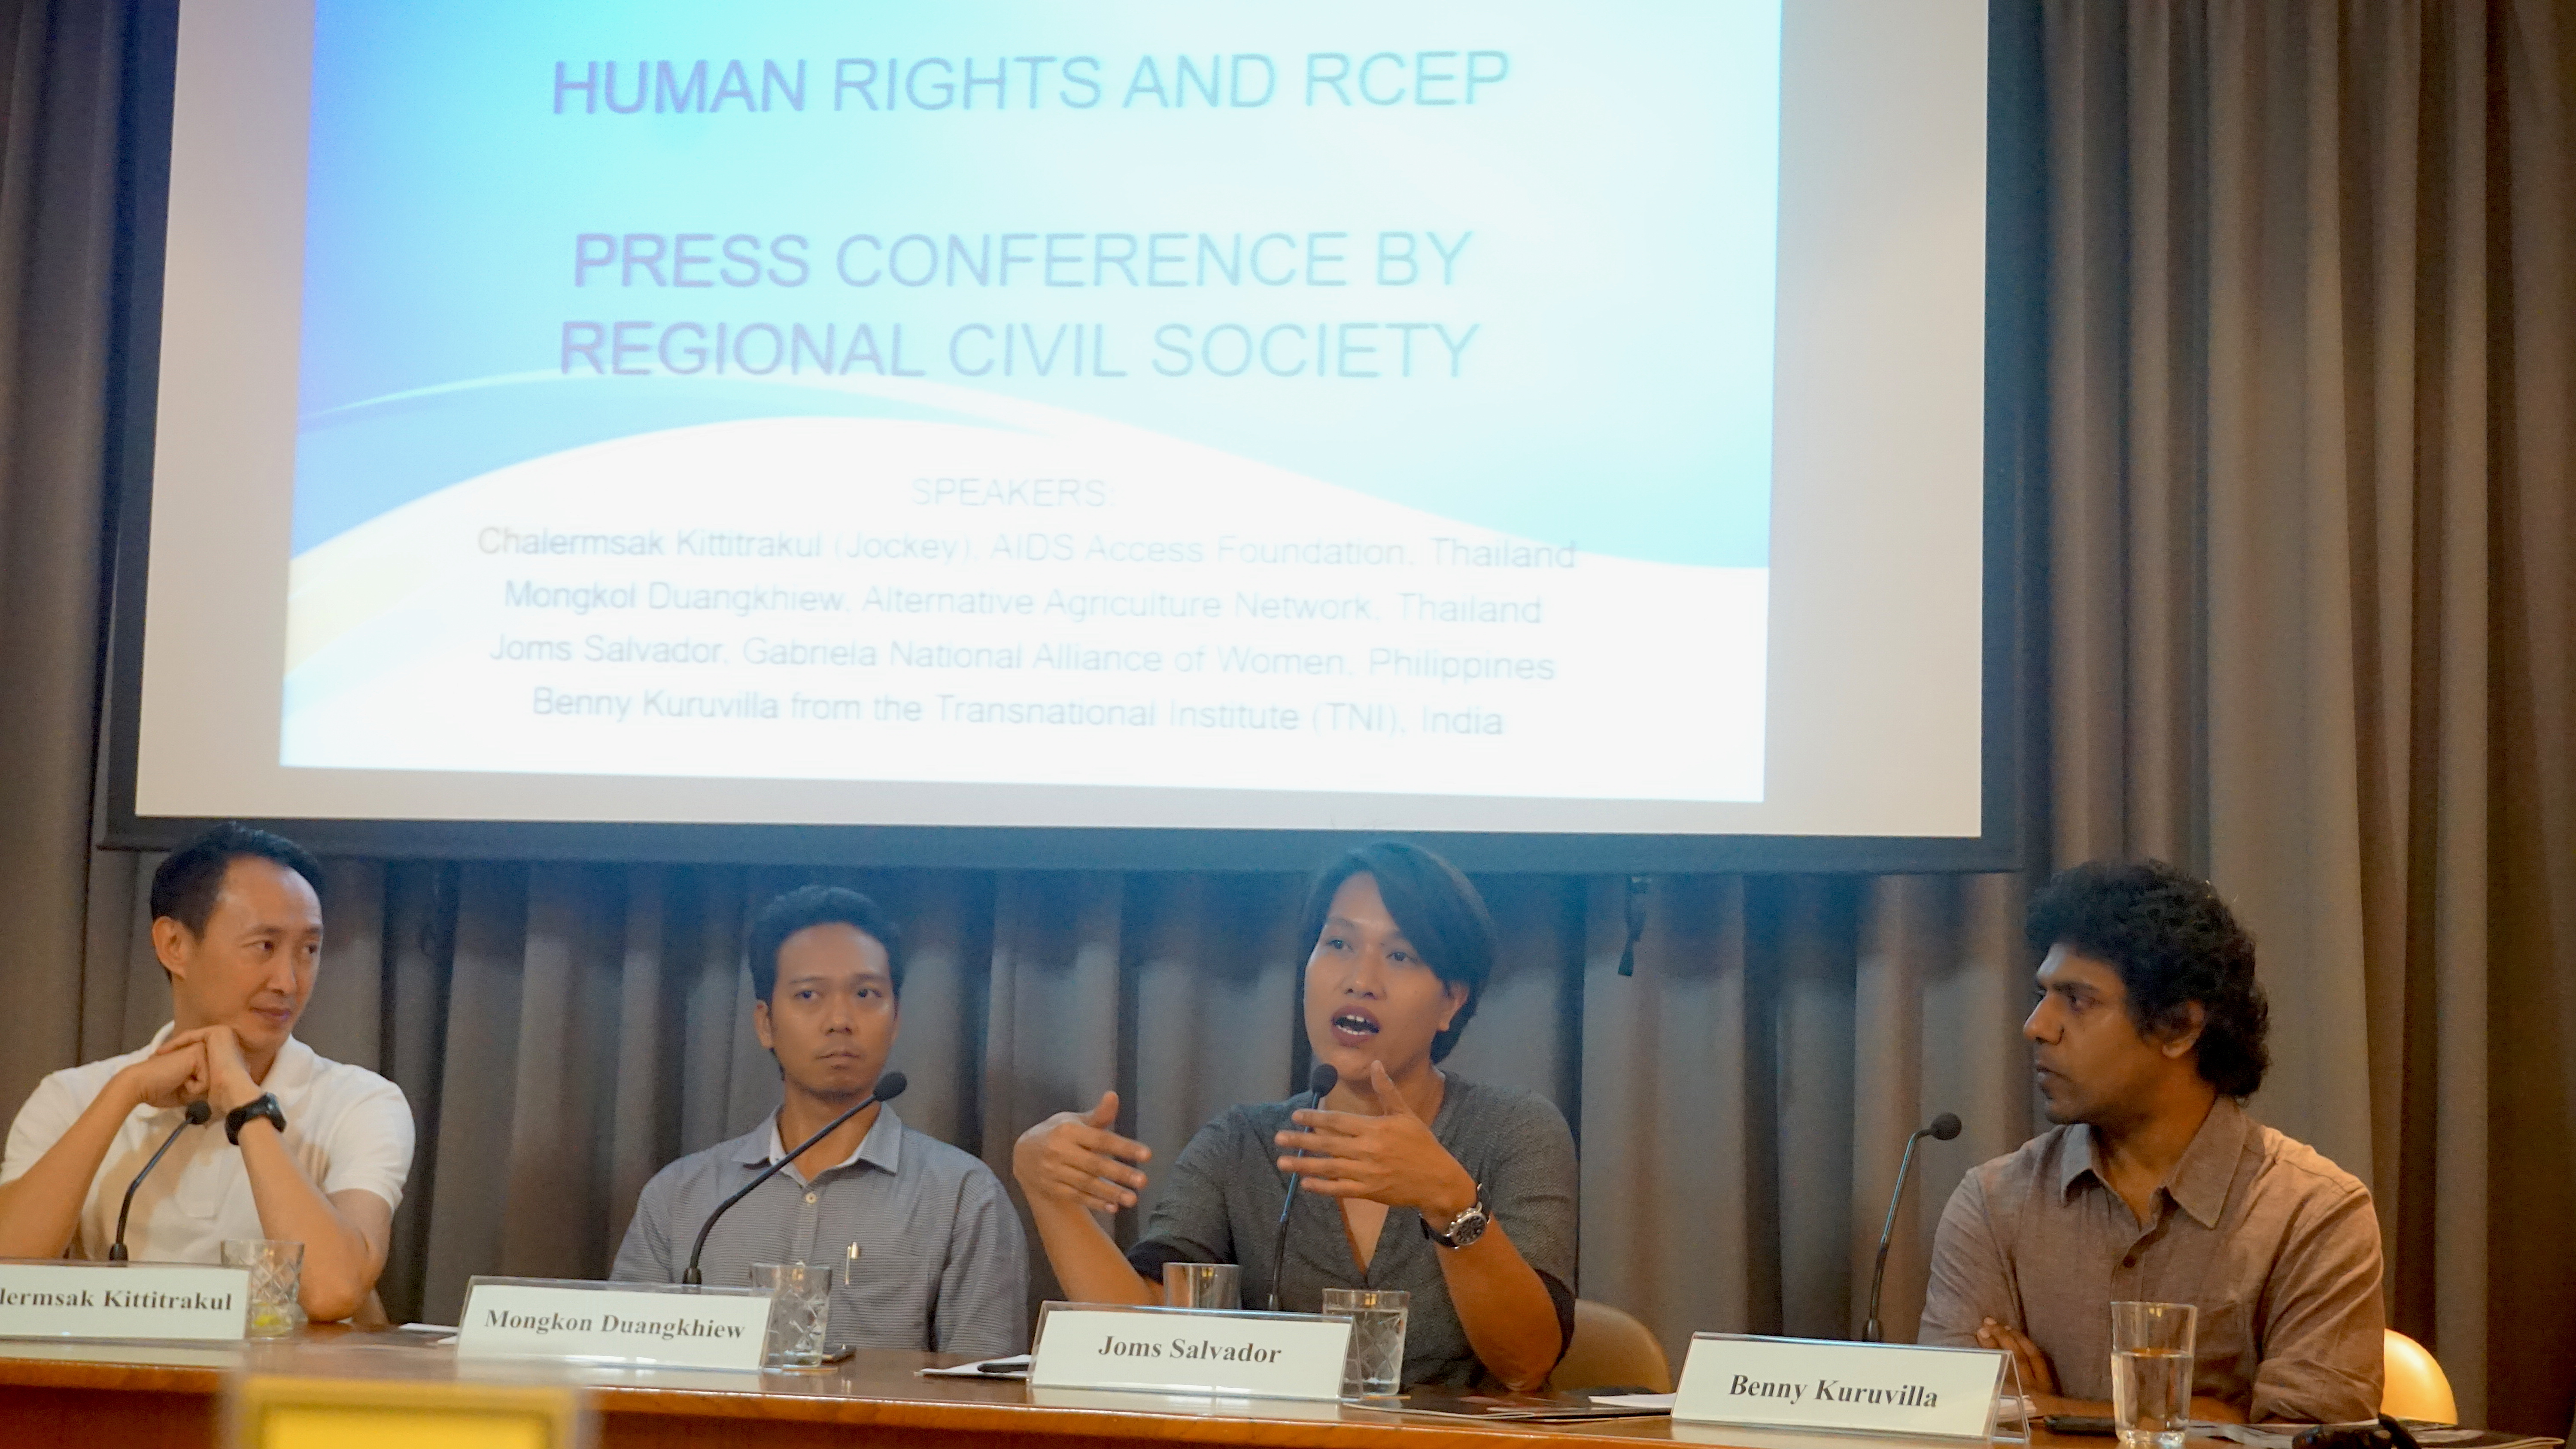 People's movements reject RCEP - Call for parliamentary scrutiny of mega trade deal